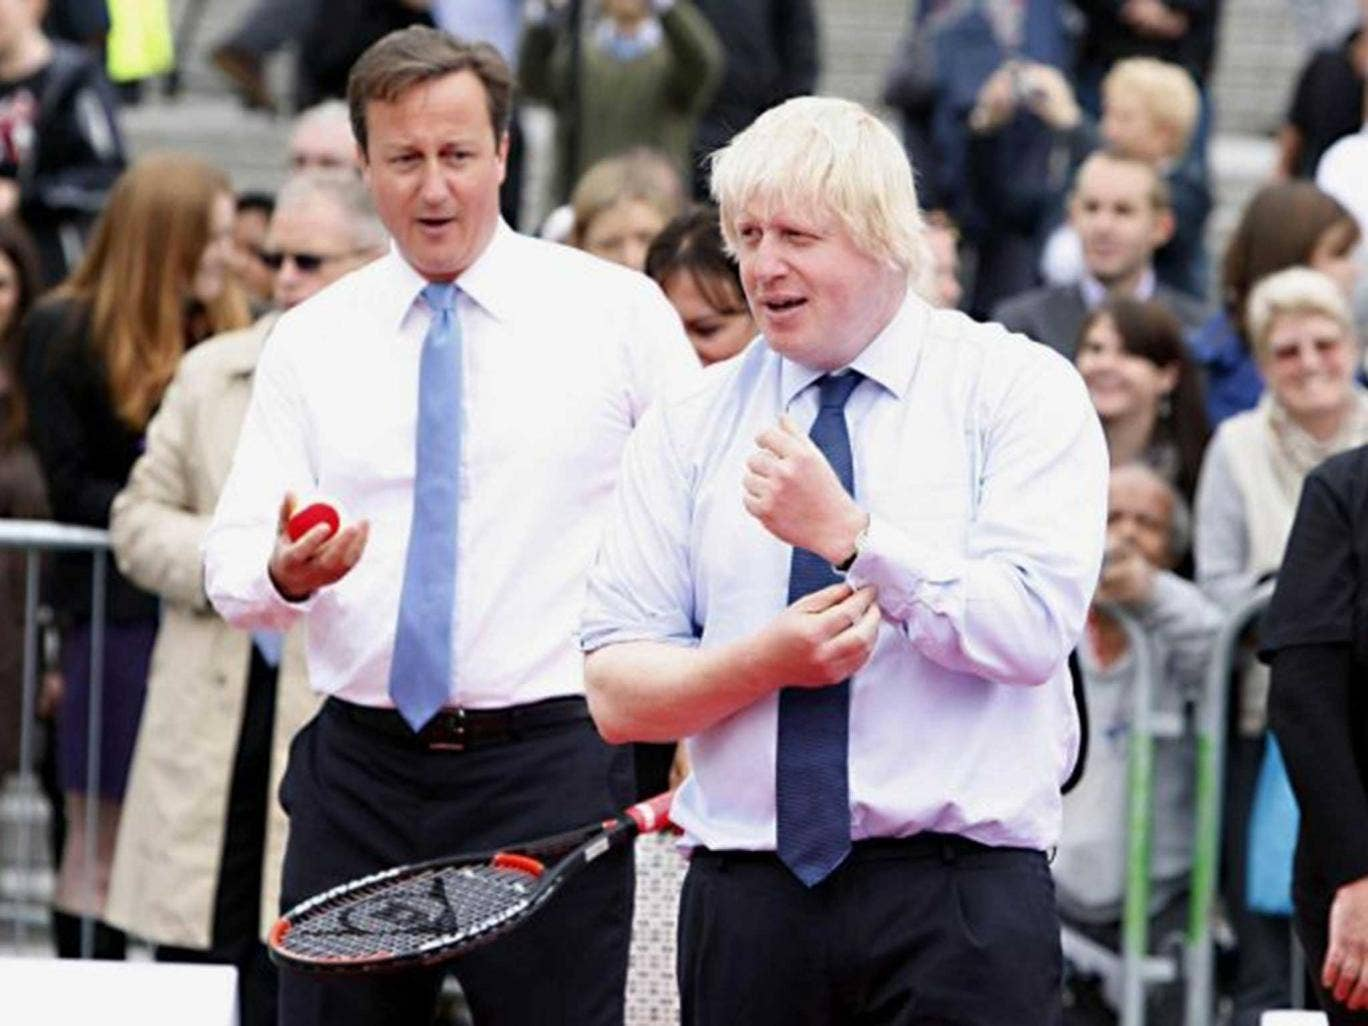 Lubov Chernukhin, a banker and the wife of a former finance minister in Putin's Russia paid £160,000 for a tennis match with Boris Johnson and David Cameron